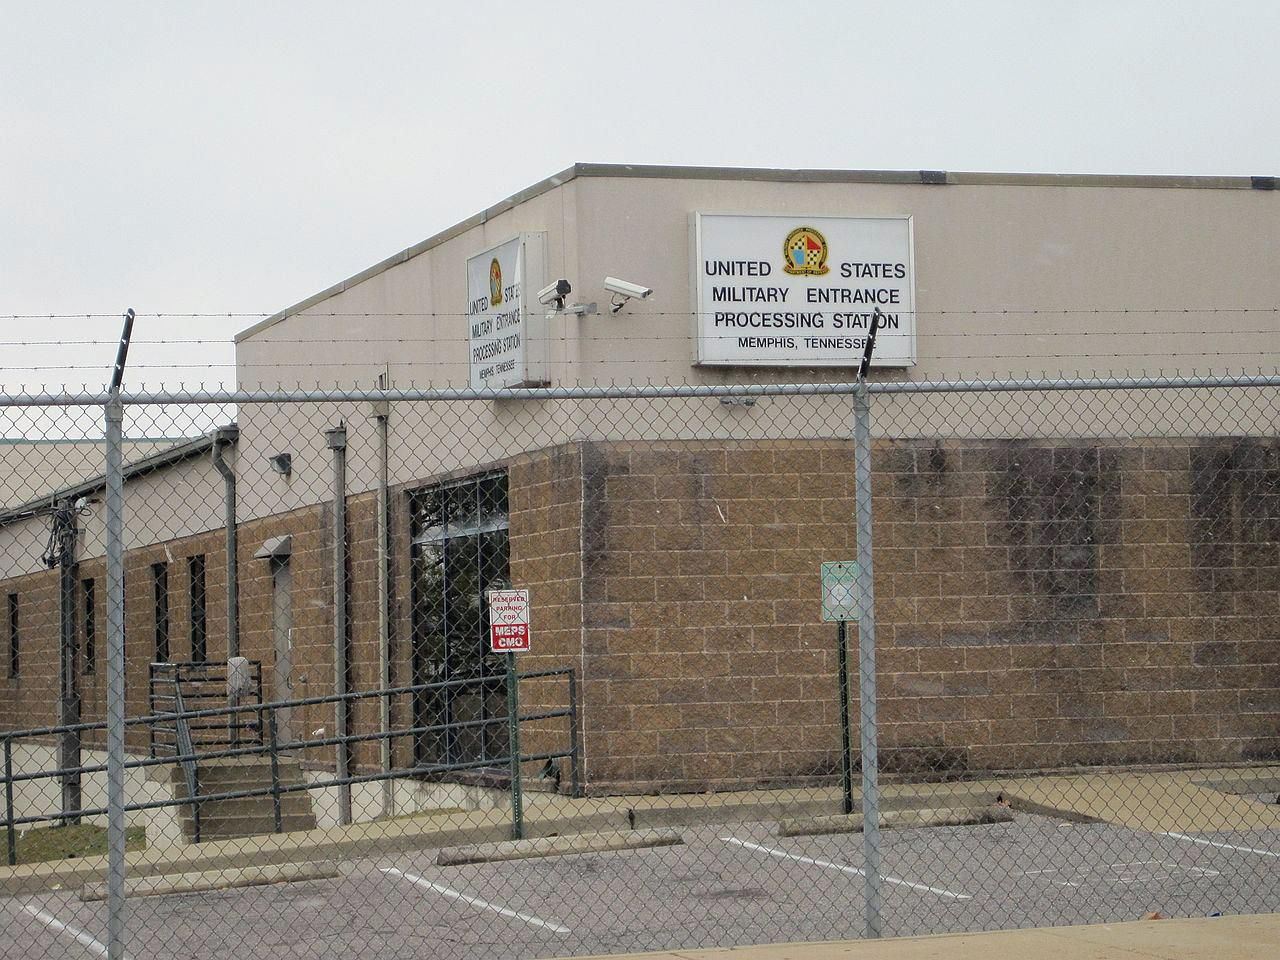 An Overview of the Military Entrance Processing Station